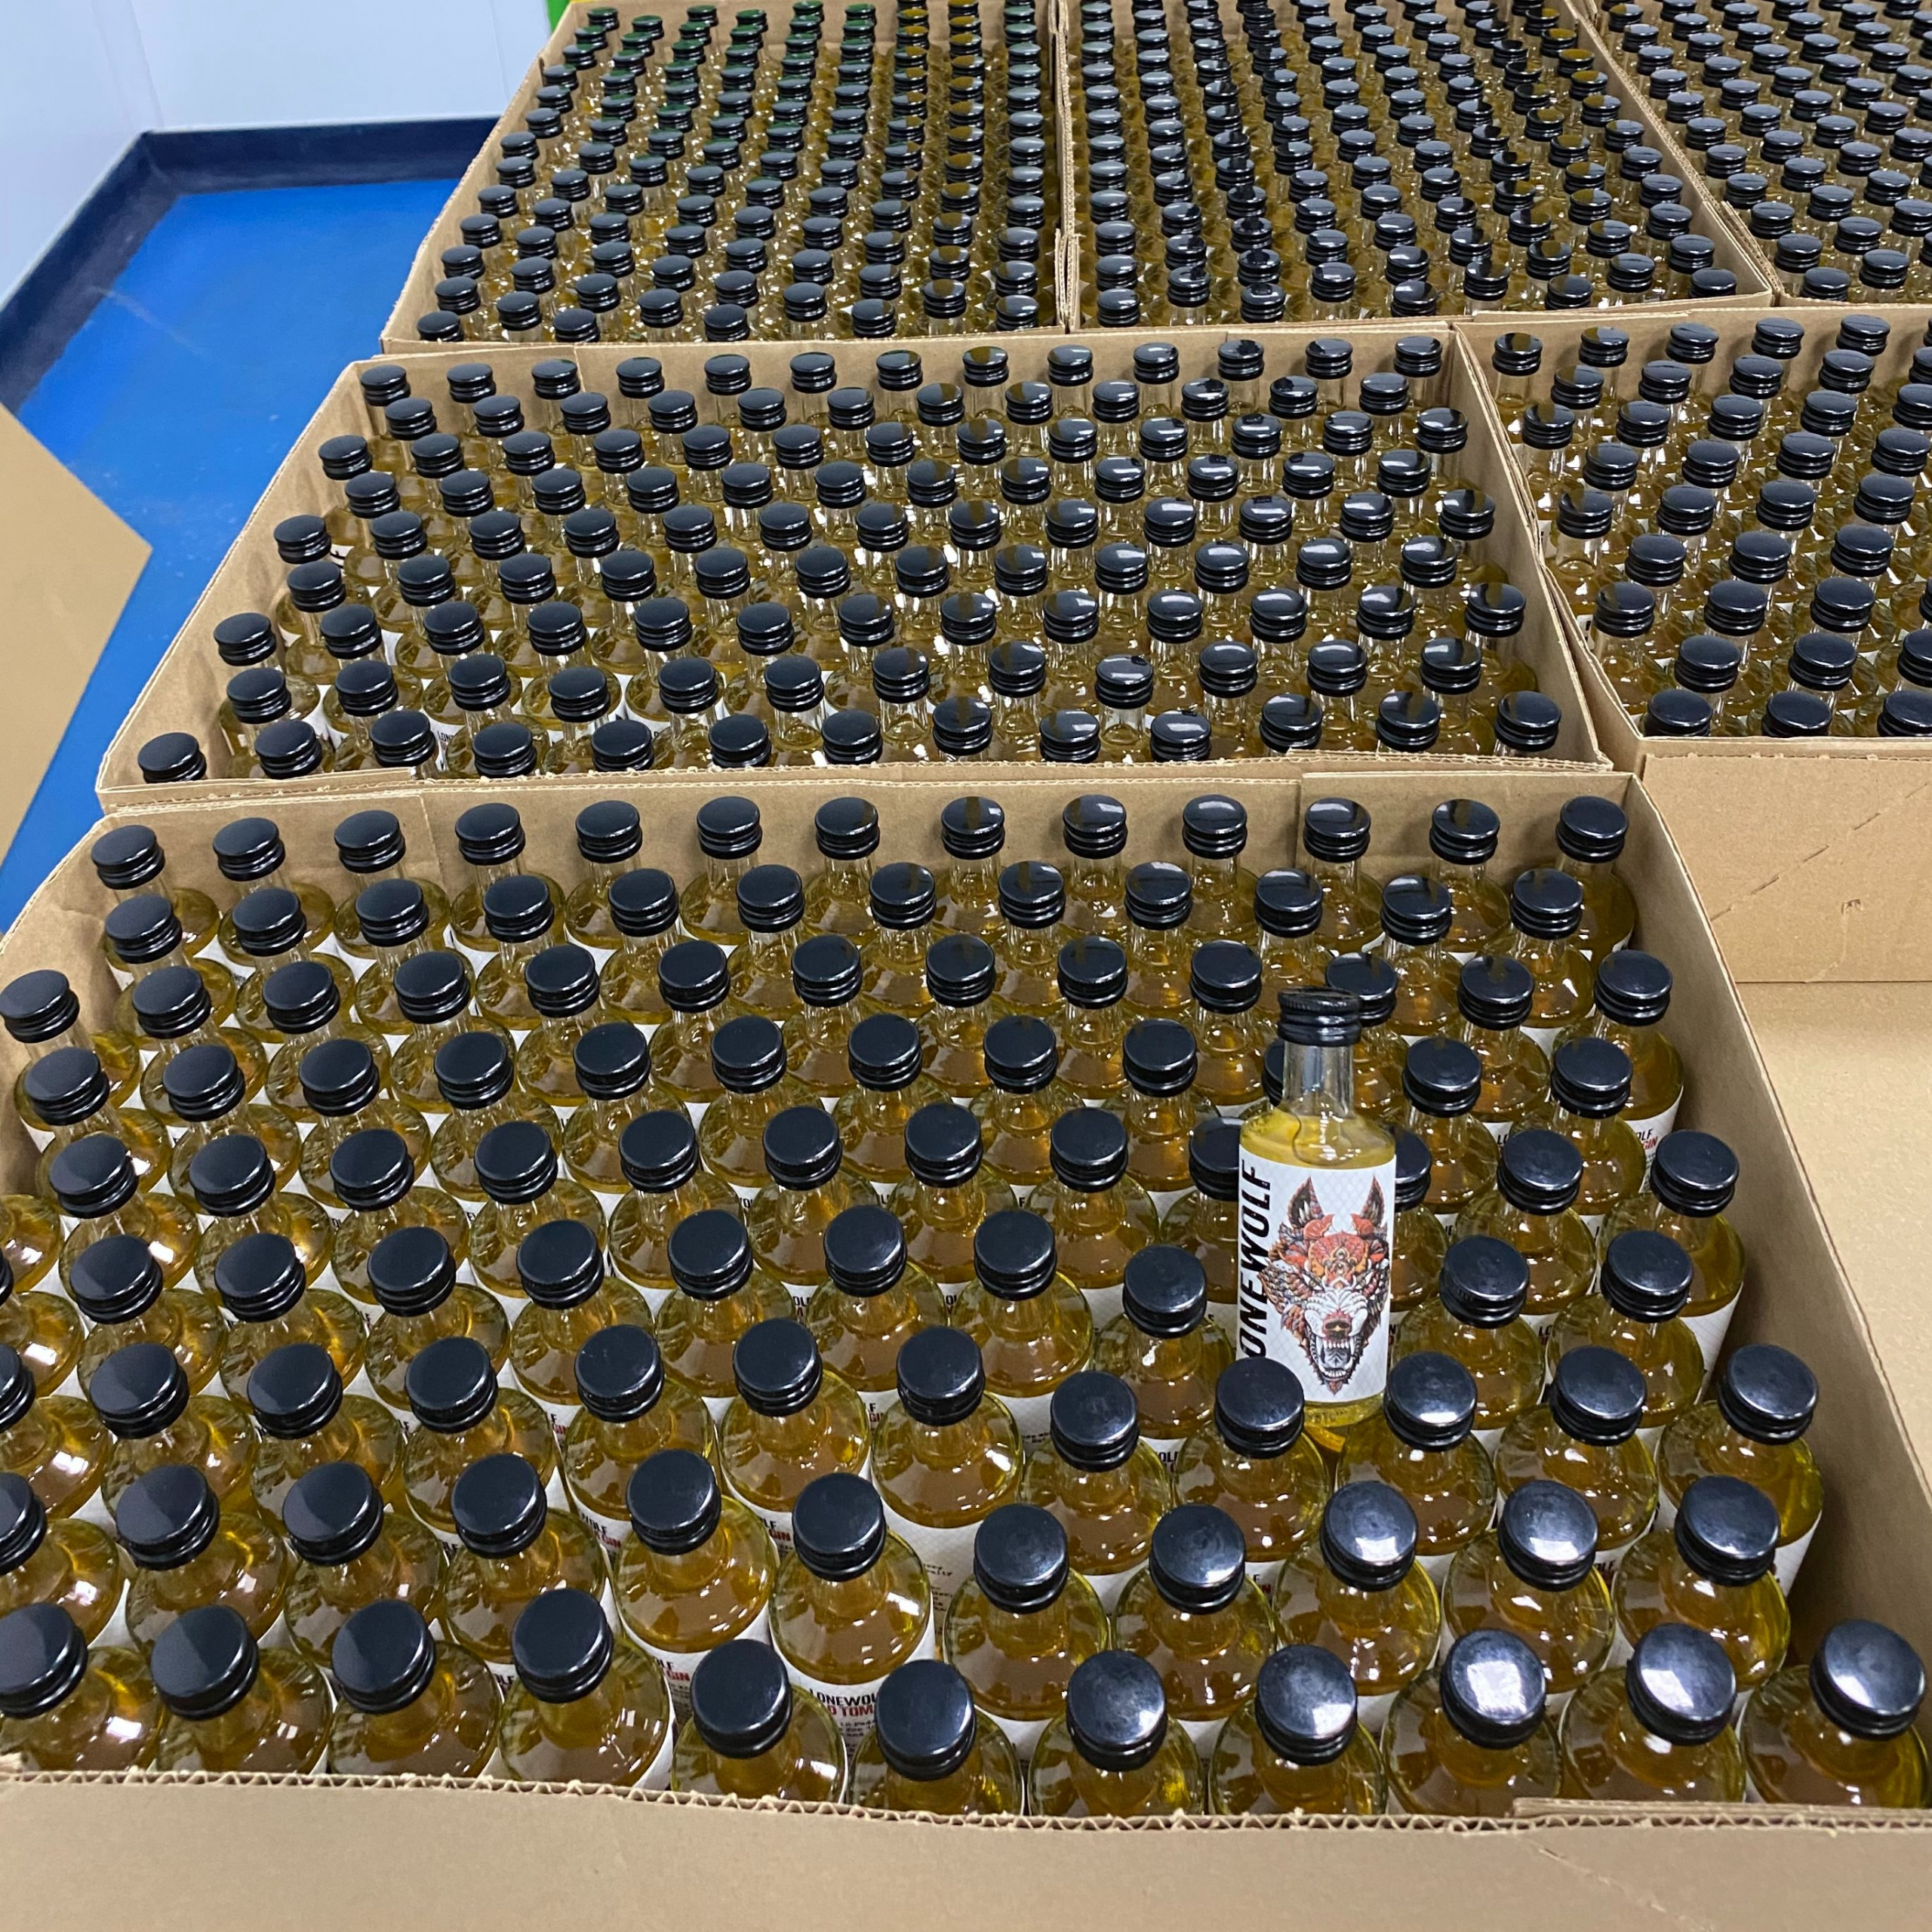 Brewdog bottles ready for warehousing at the Copacking-plant